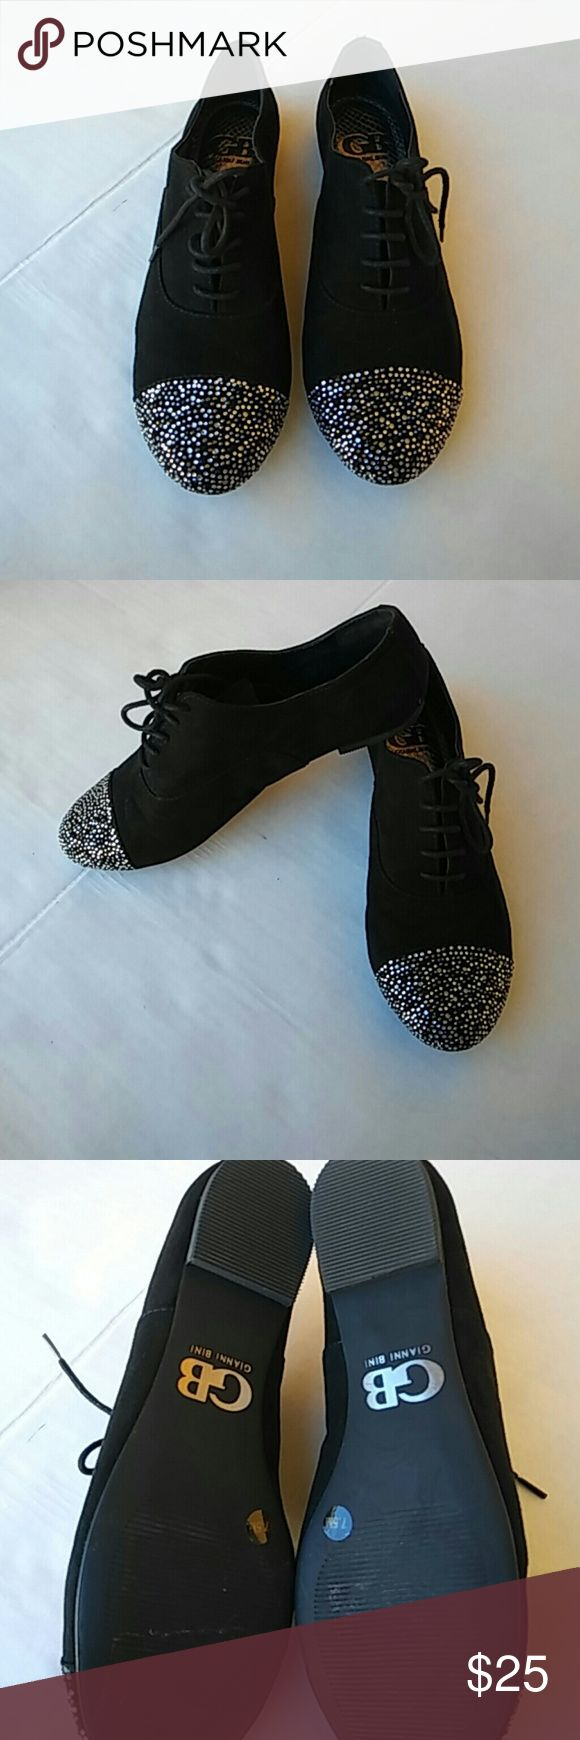 Gianni Bini Black shoes Gently used in great condition black suede sparkly front Gianni Bini Black shoes (: Gianni Bini Shoes